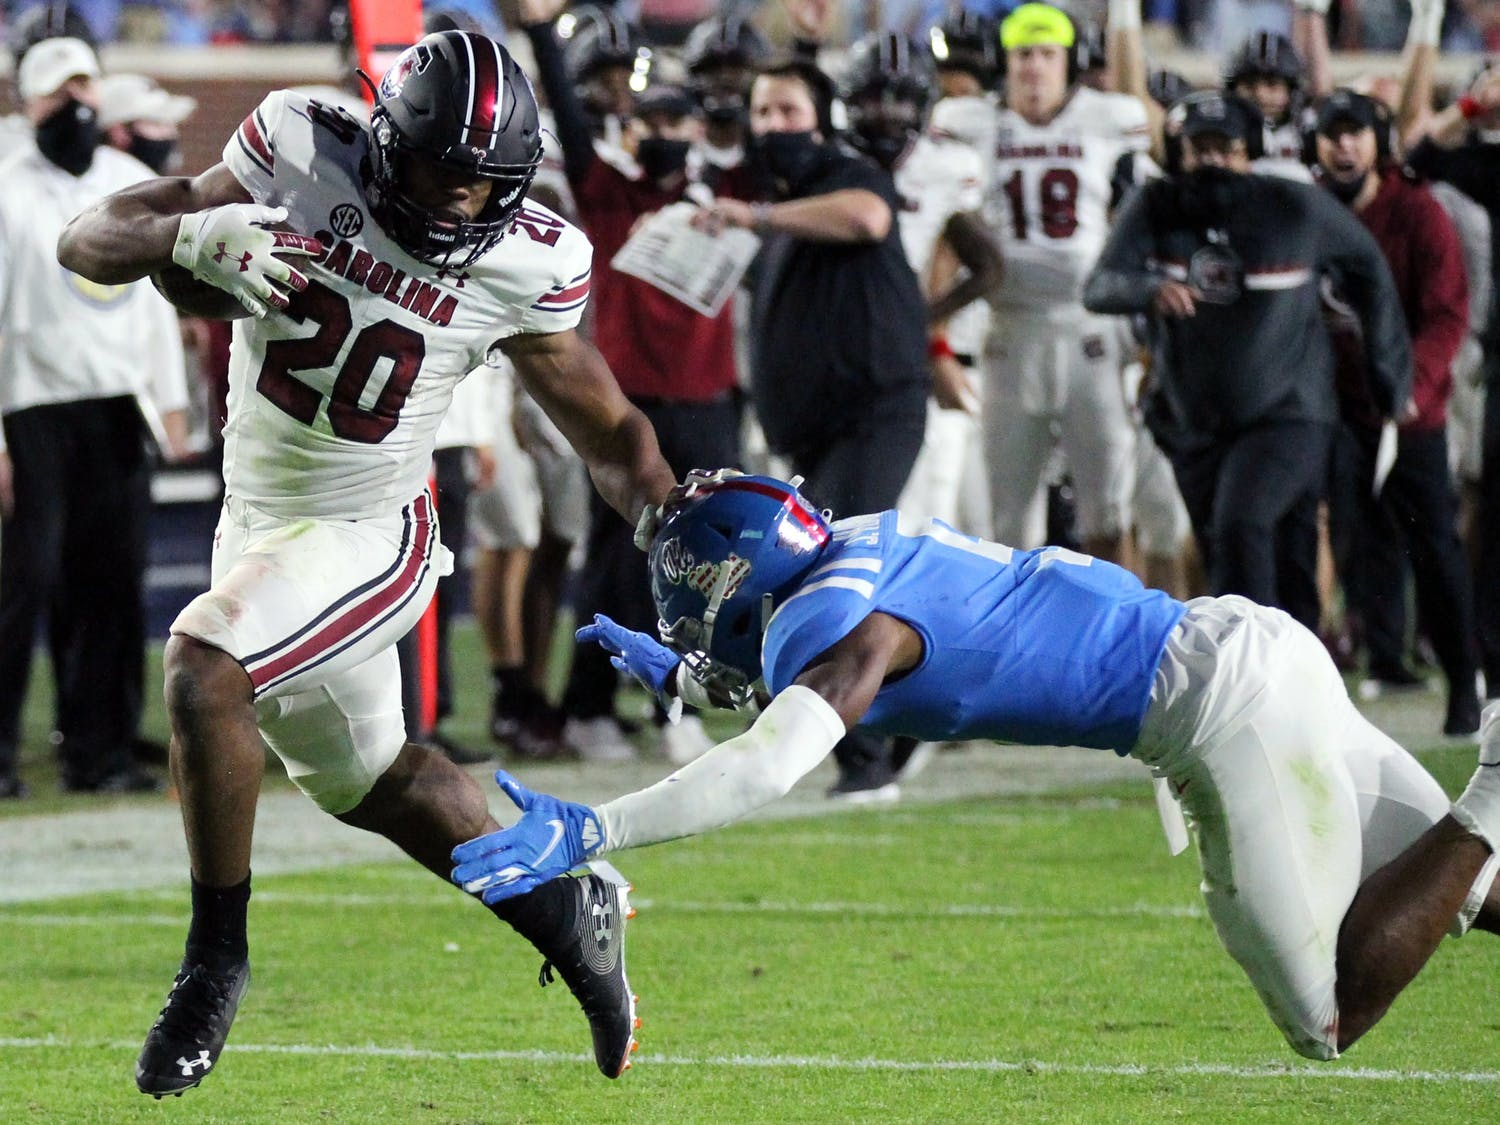 Sophomore running back Kevin Harris avoids being tackled while carrying the ball during the game against the Ole Miss Rebels Saturday. The Gamecocks lost 59-42 and their record fell to 2-5.